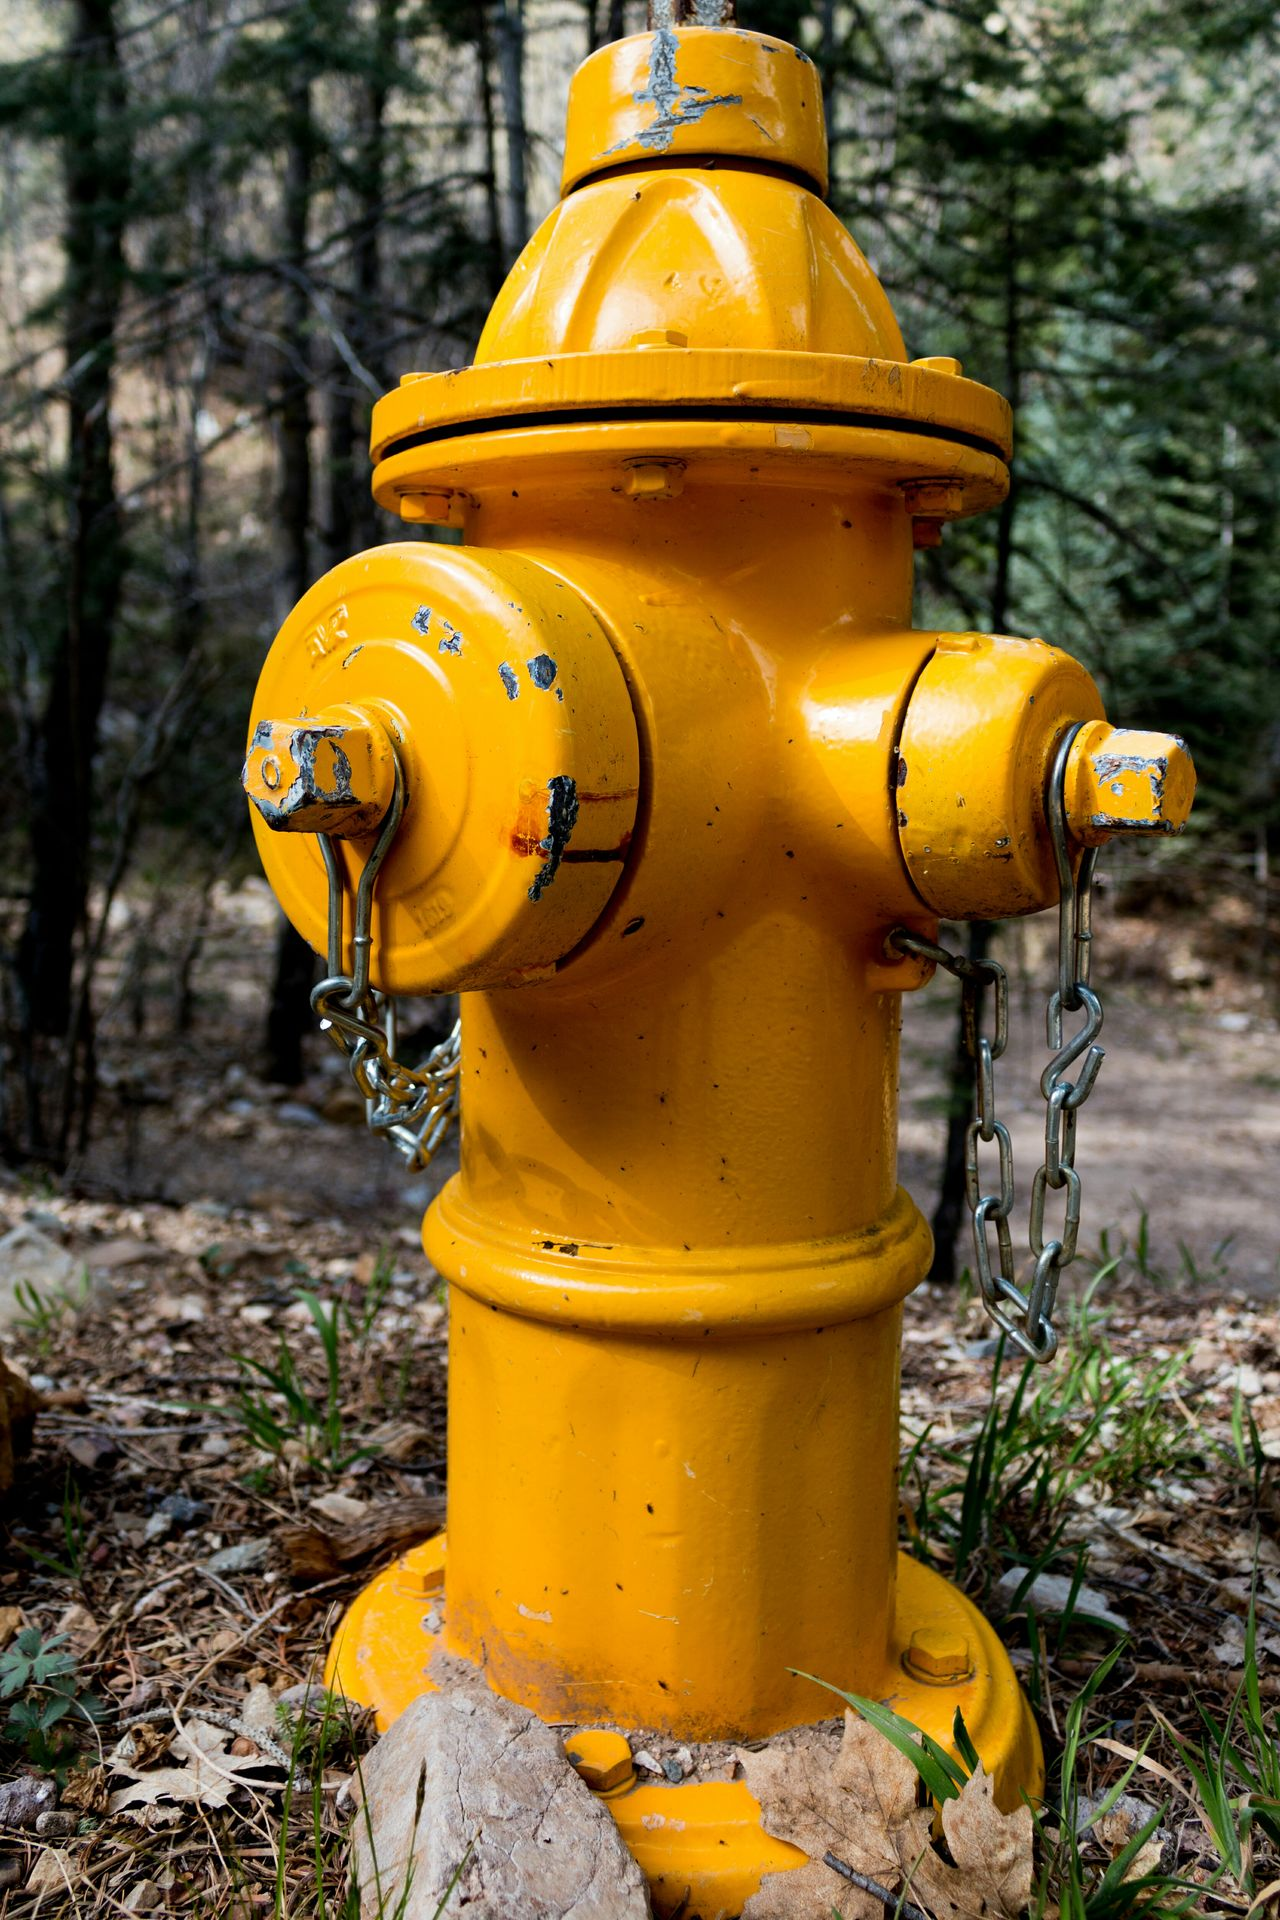 Dry Barrel FireFighting  Fire Science Fire Hydrant Photography Forest Chrome Yellow Yellow Trees Hiking